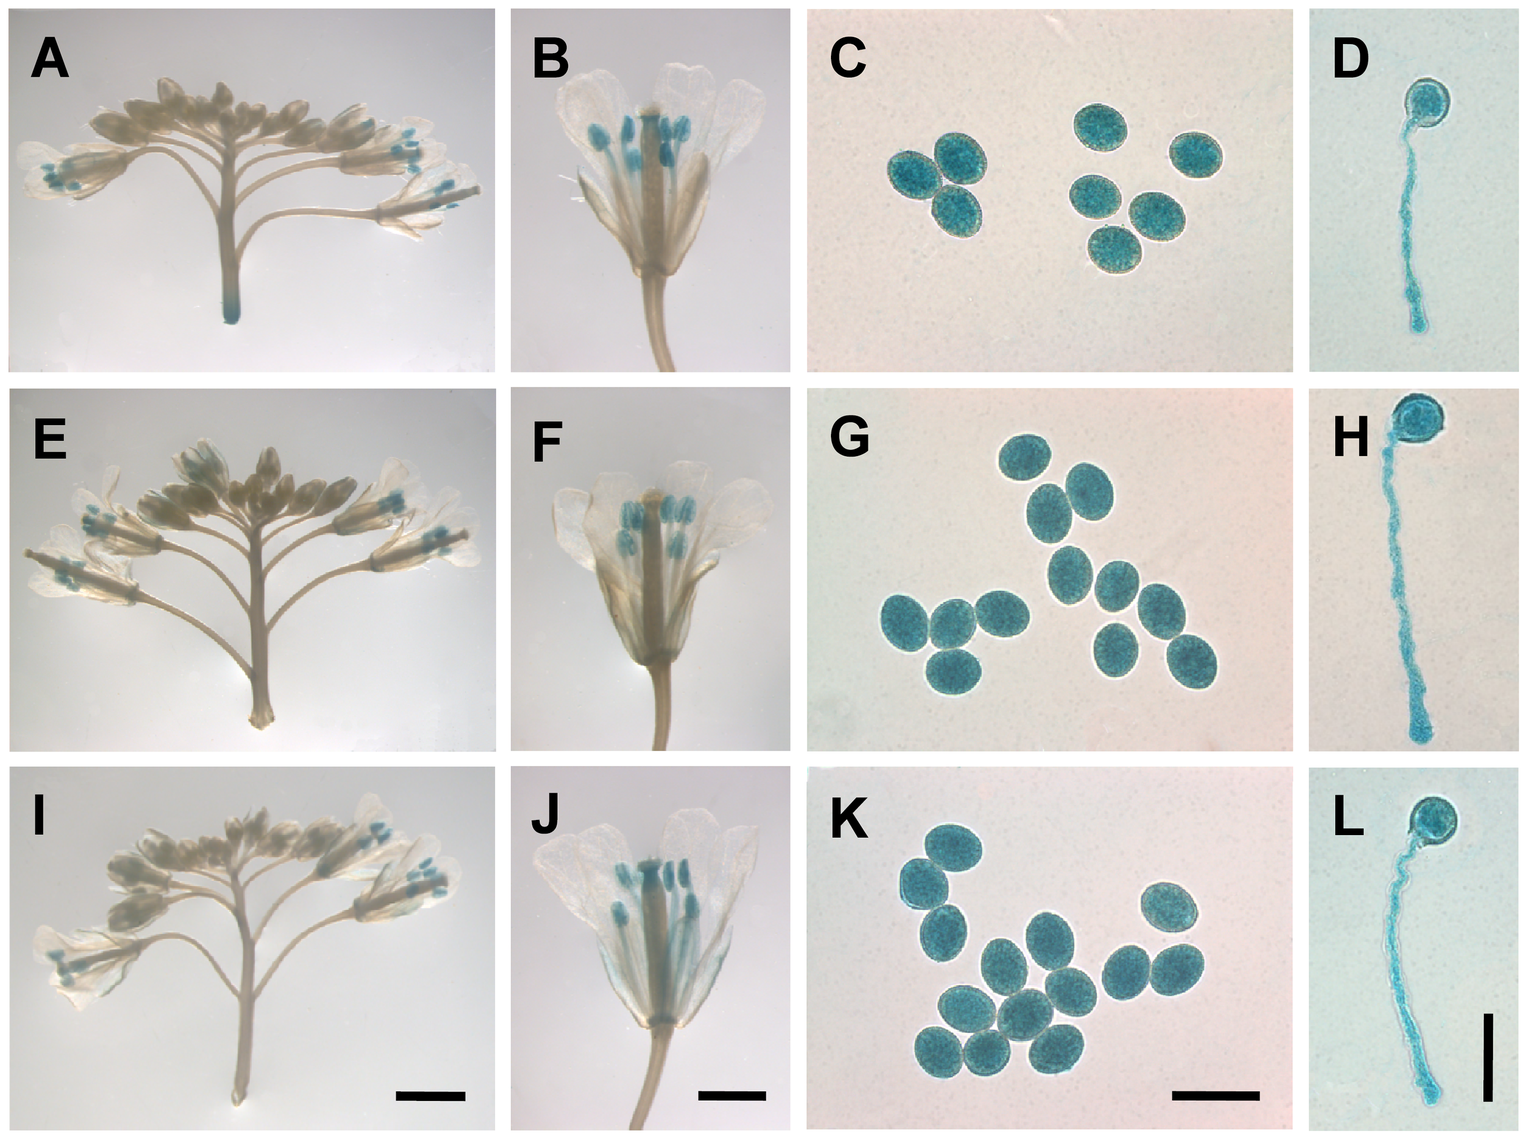 <i>MYB97</i>, <i>MYB101</i> and <i>MYB120</i> were expressed in pollen grains and pollen tubes.